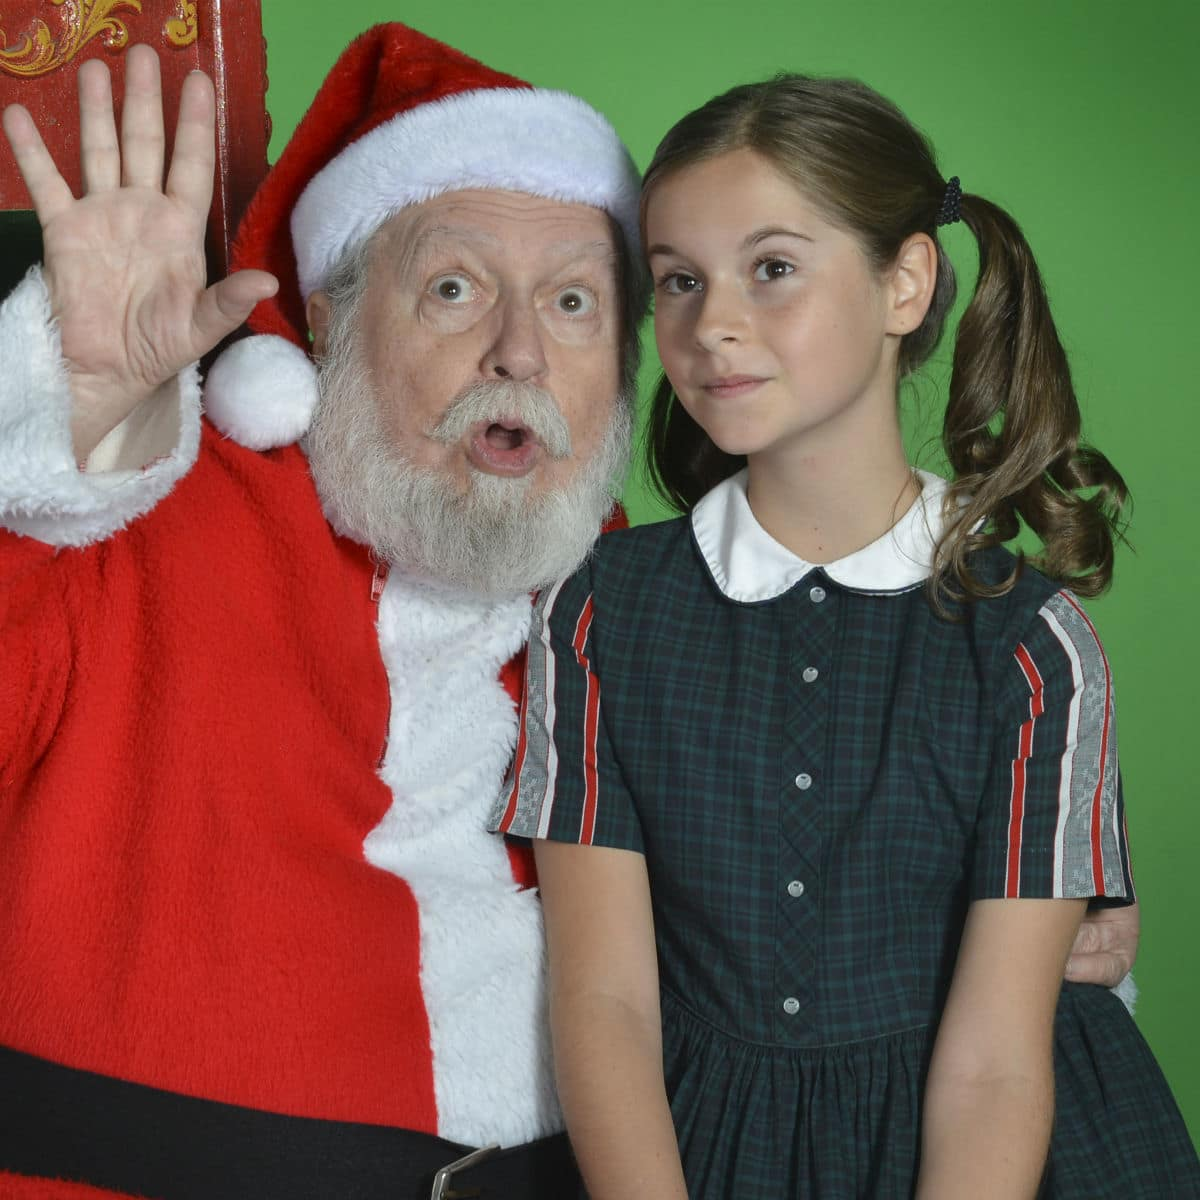 Dallas Children's Theater presents Miracle on 34th Street